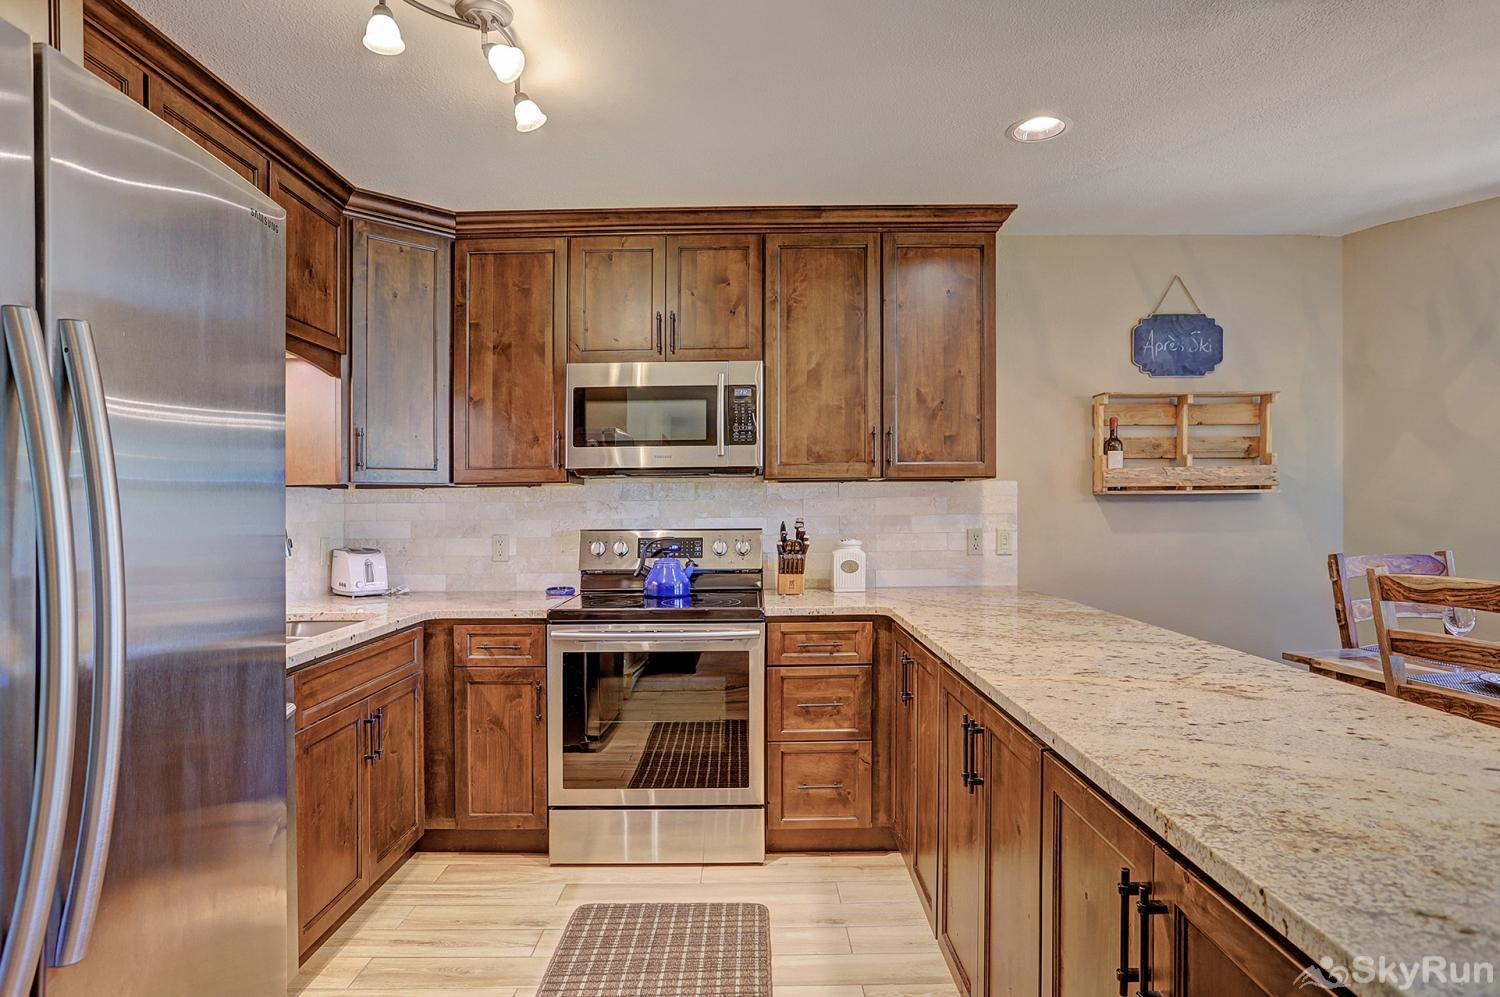 Tyra Summit A2A Fully equipped kitchen updated with stainless steel appliances